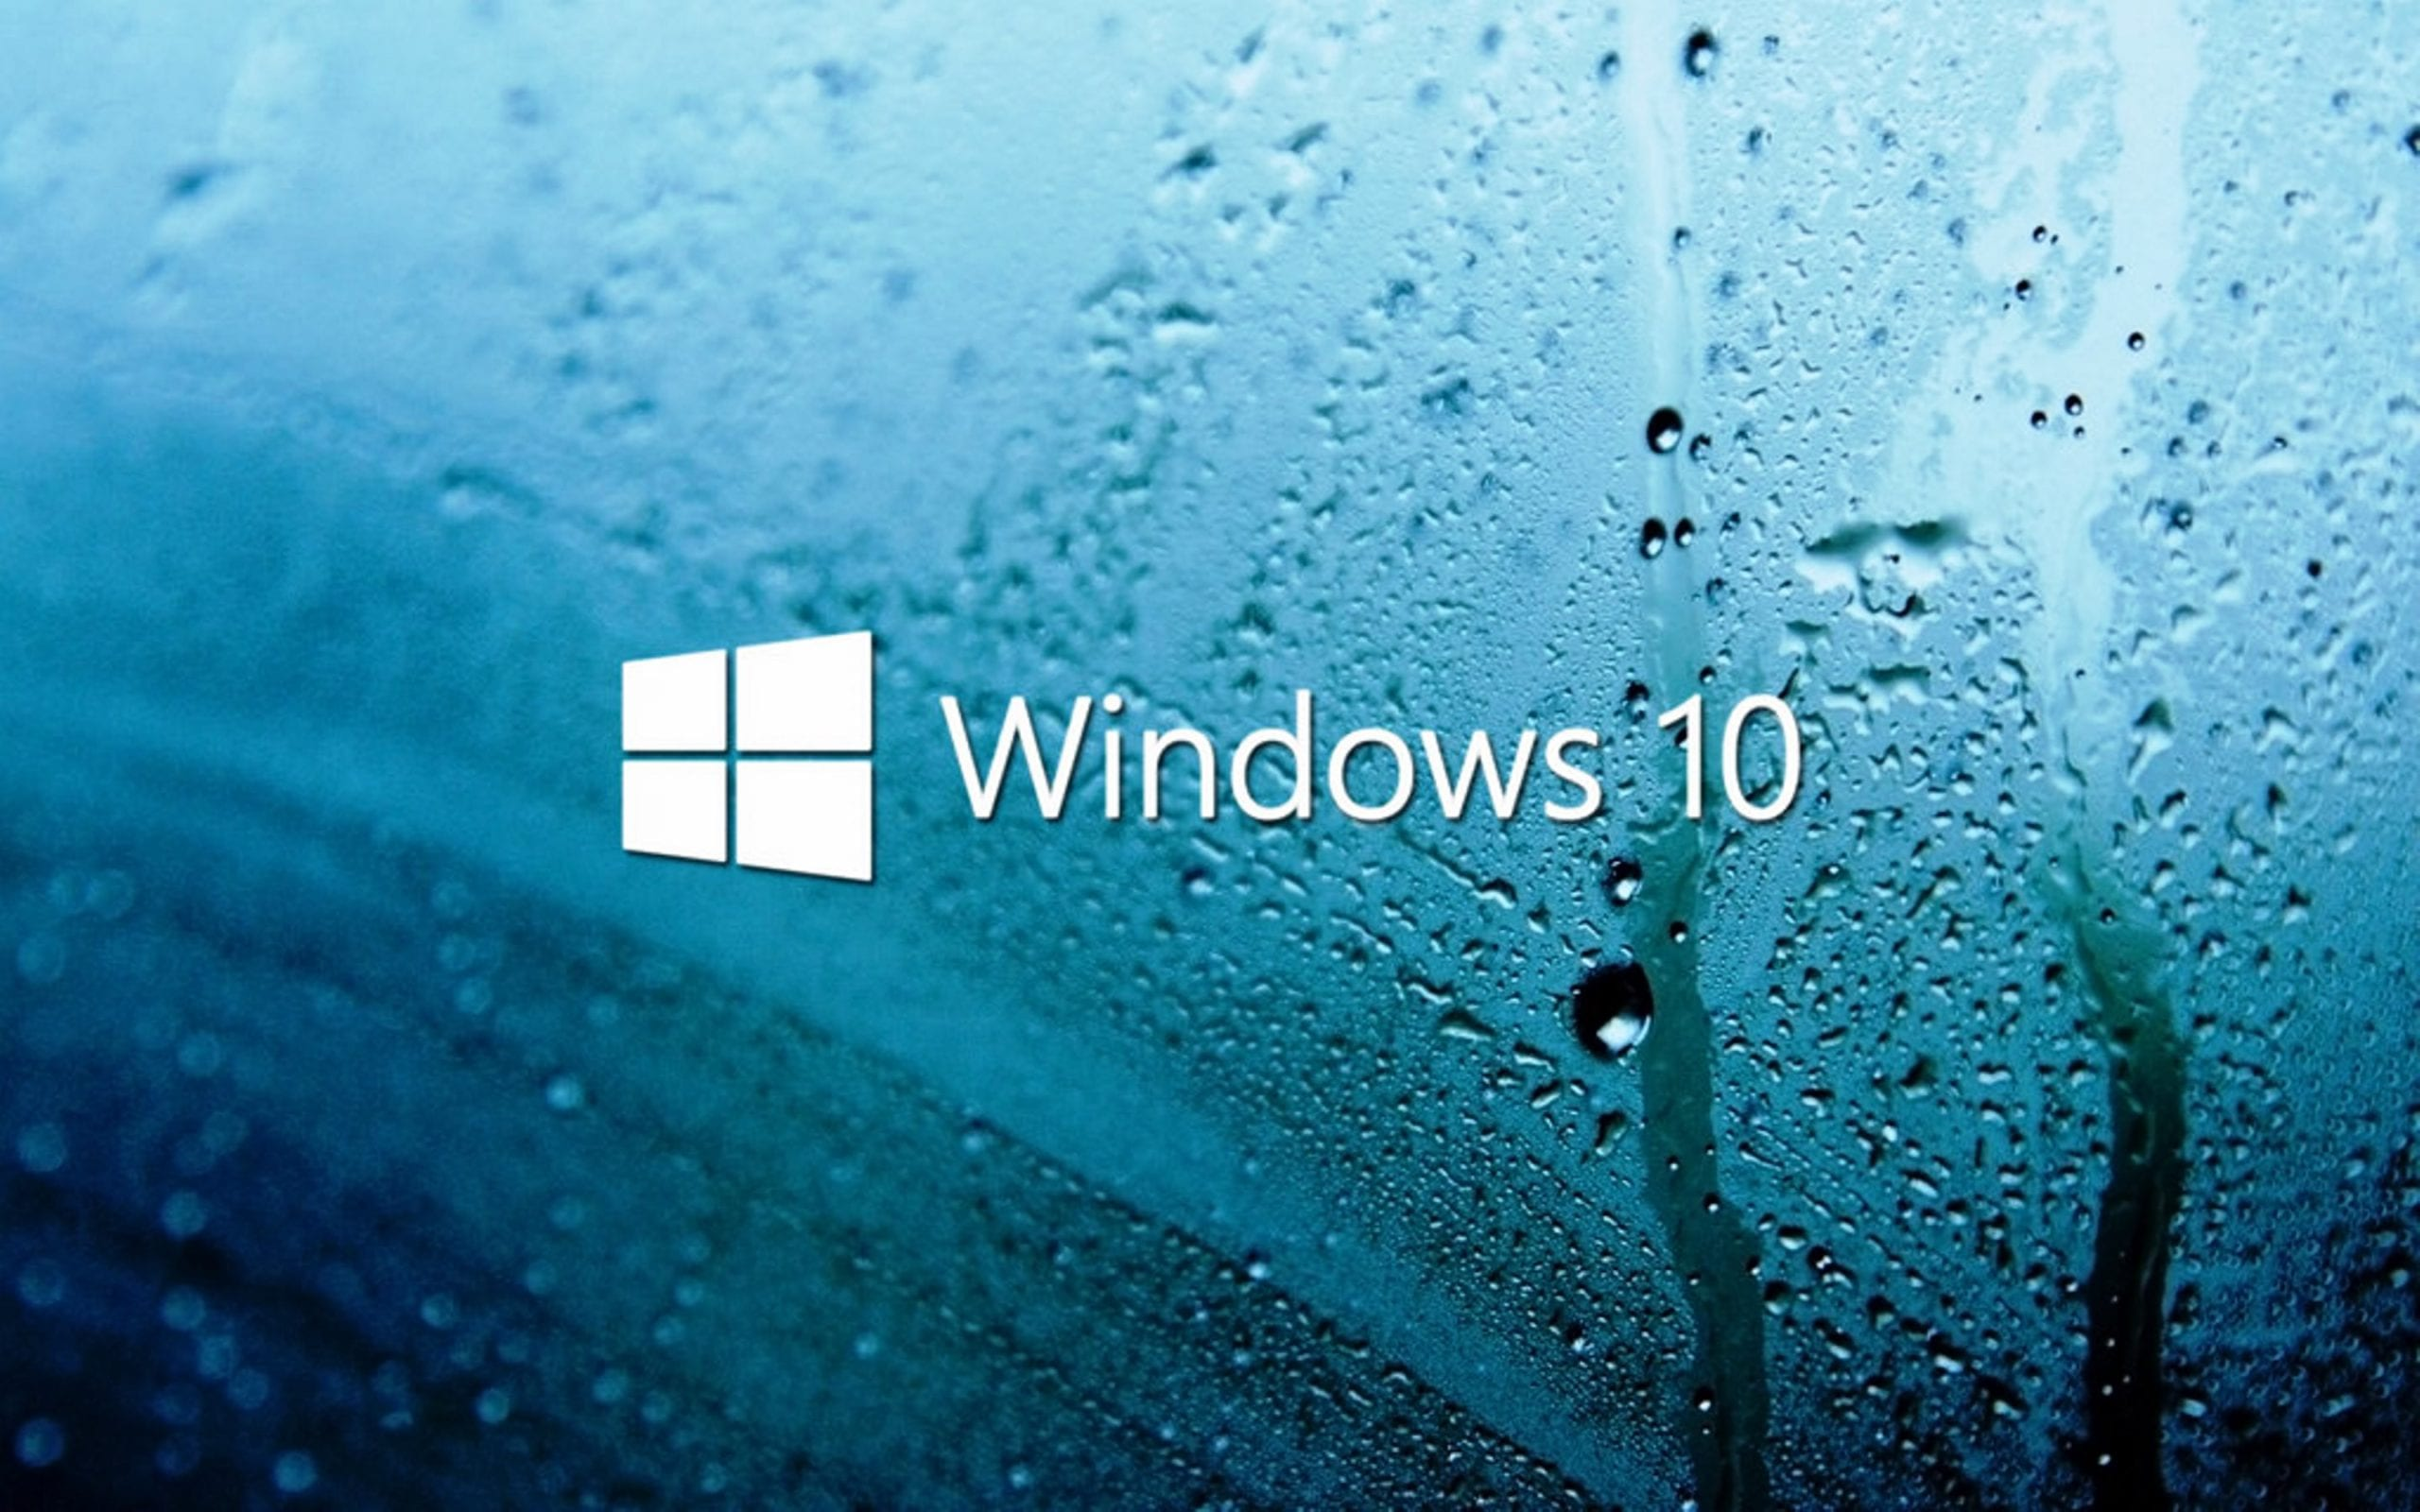 Upgrading from Windows 7 to Windows 10 is still Free in 2018